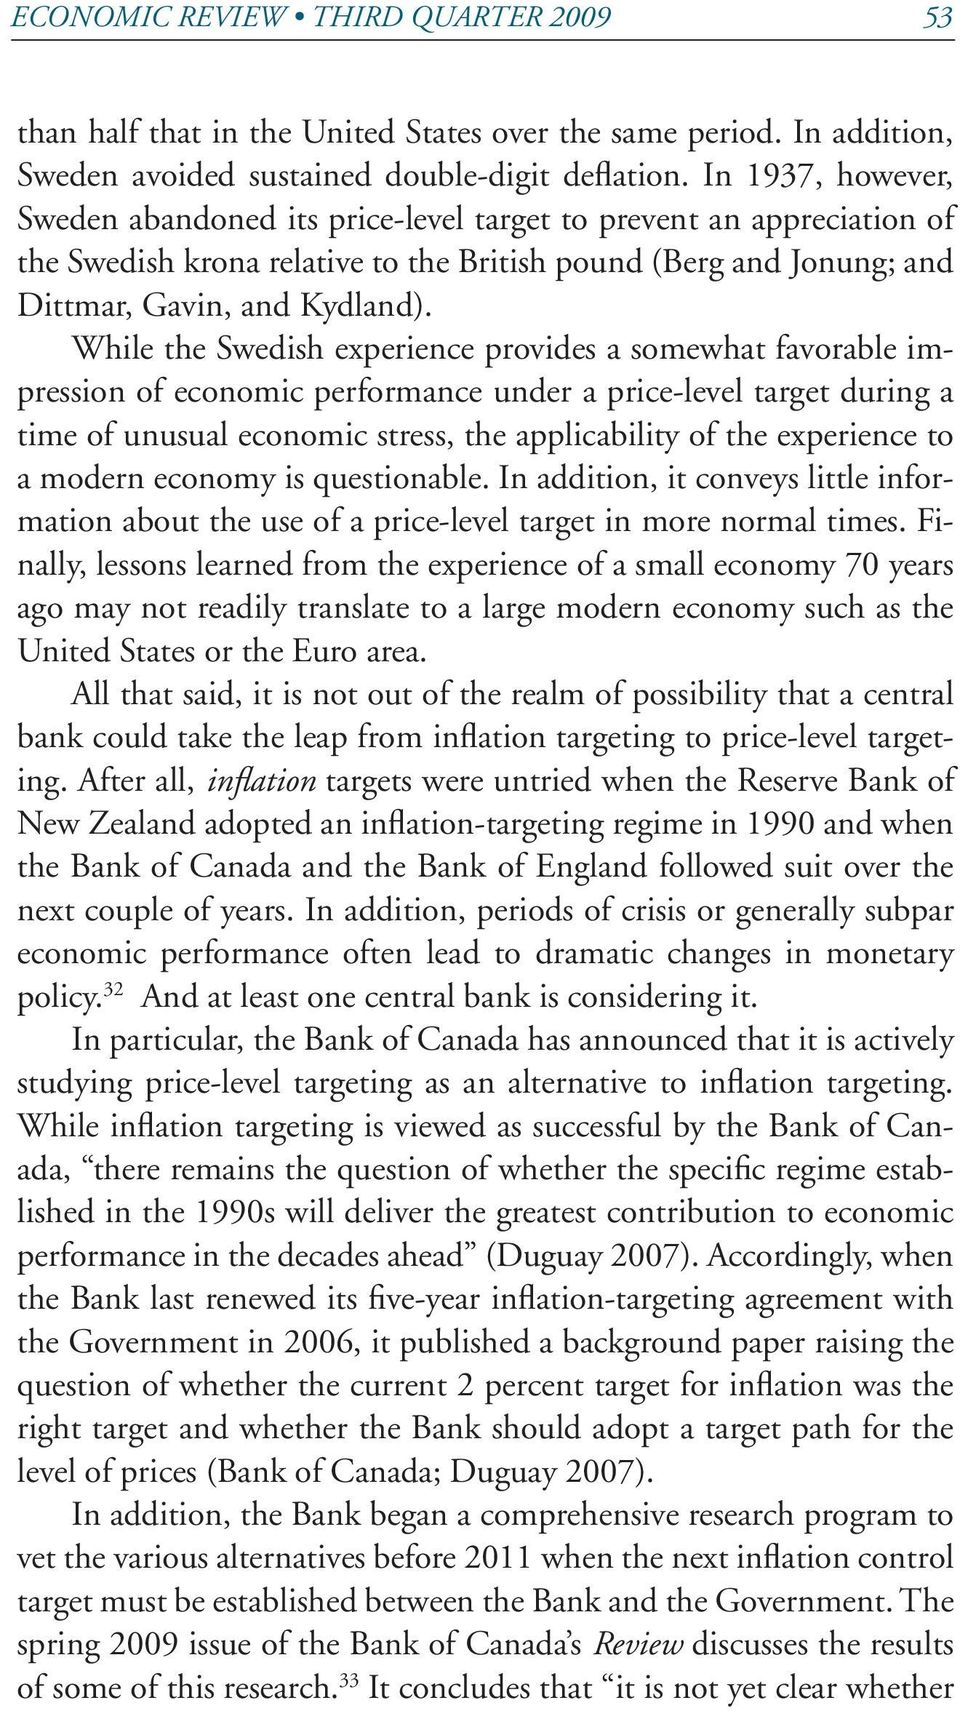 While the Swedish experience provides a somewhat favorable impression of economic performance under a price-level target during a time of unusual economic stress, the applicability of the experience